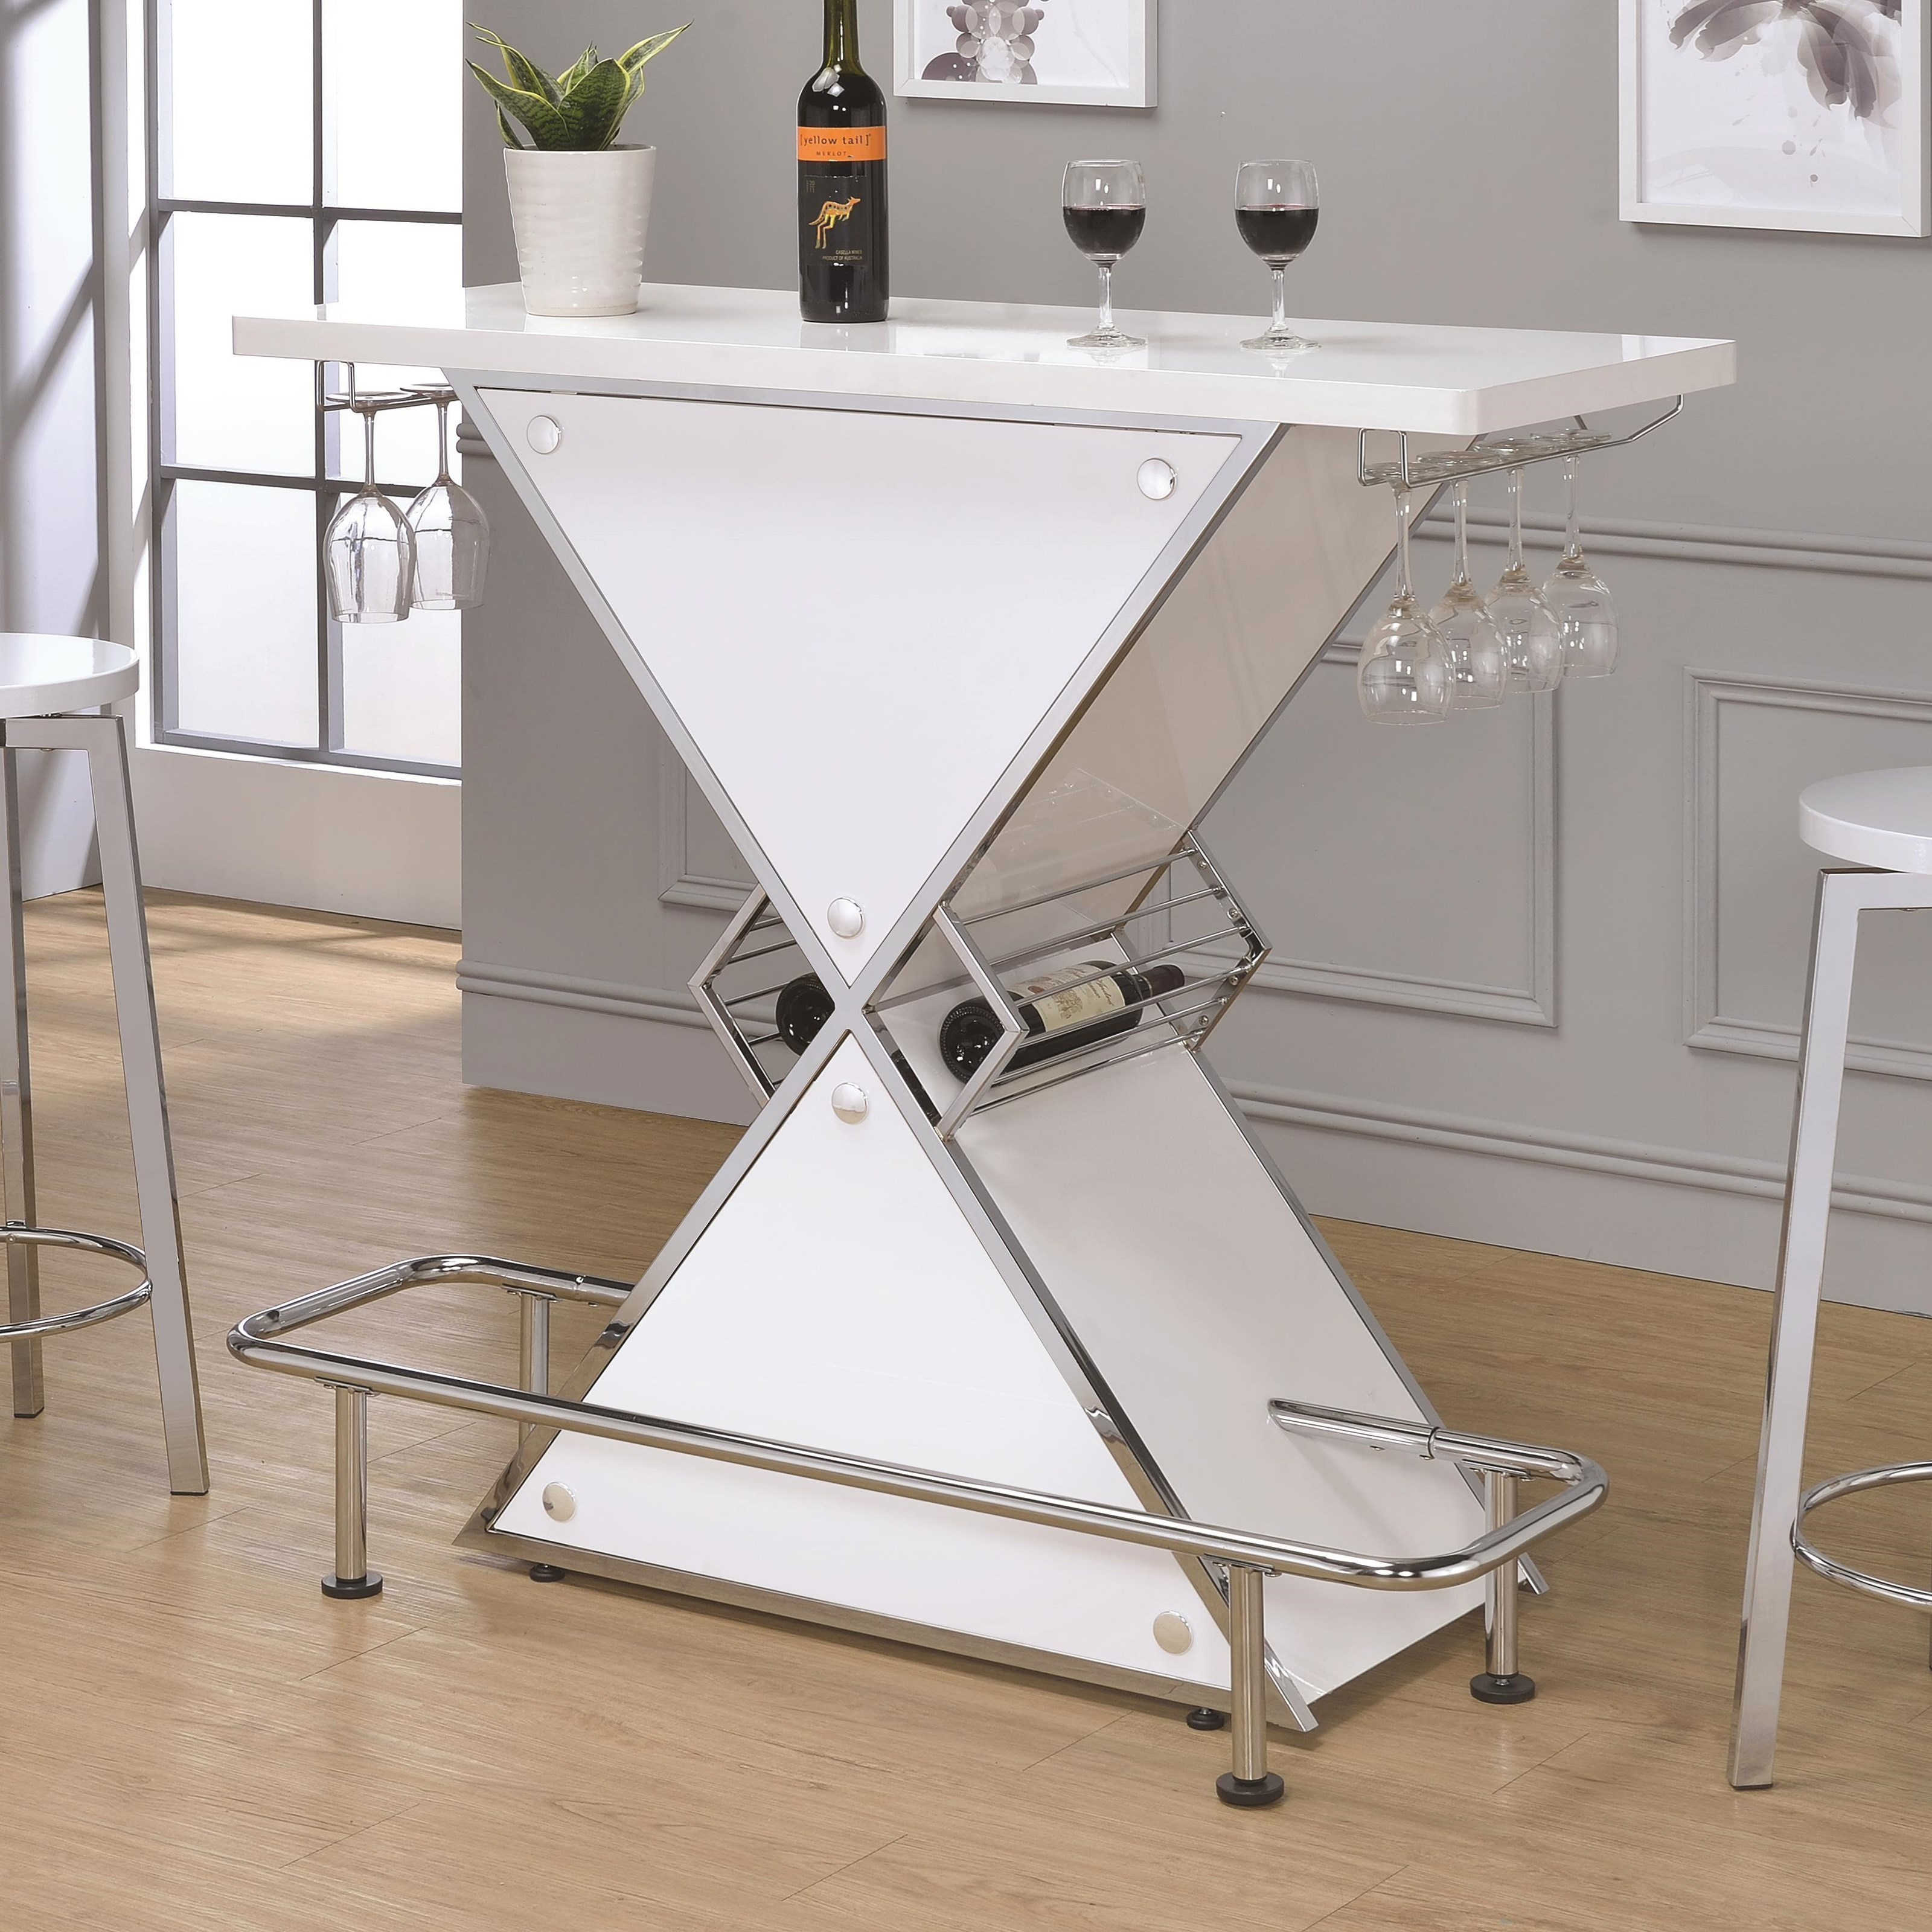 X SHAPED ACRYLIC BAR UNIT TABLE WINE STEMWARE RACK GLOSSY WHITE Quality Furniture At